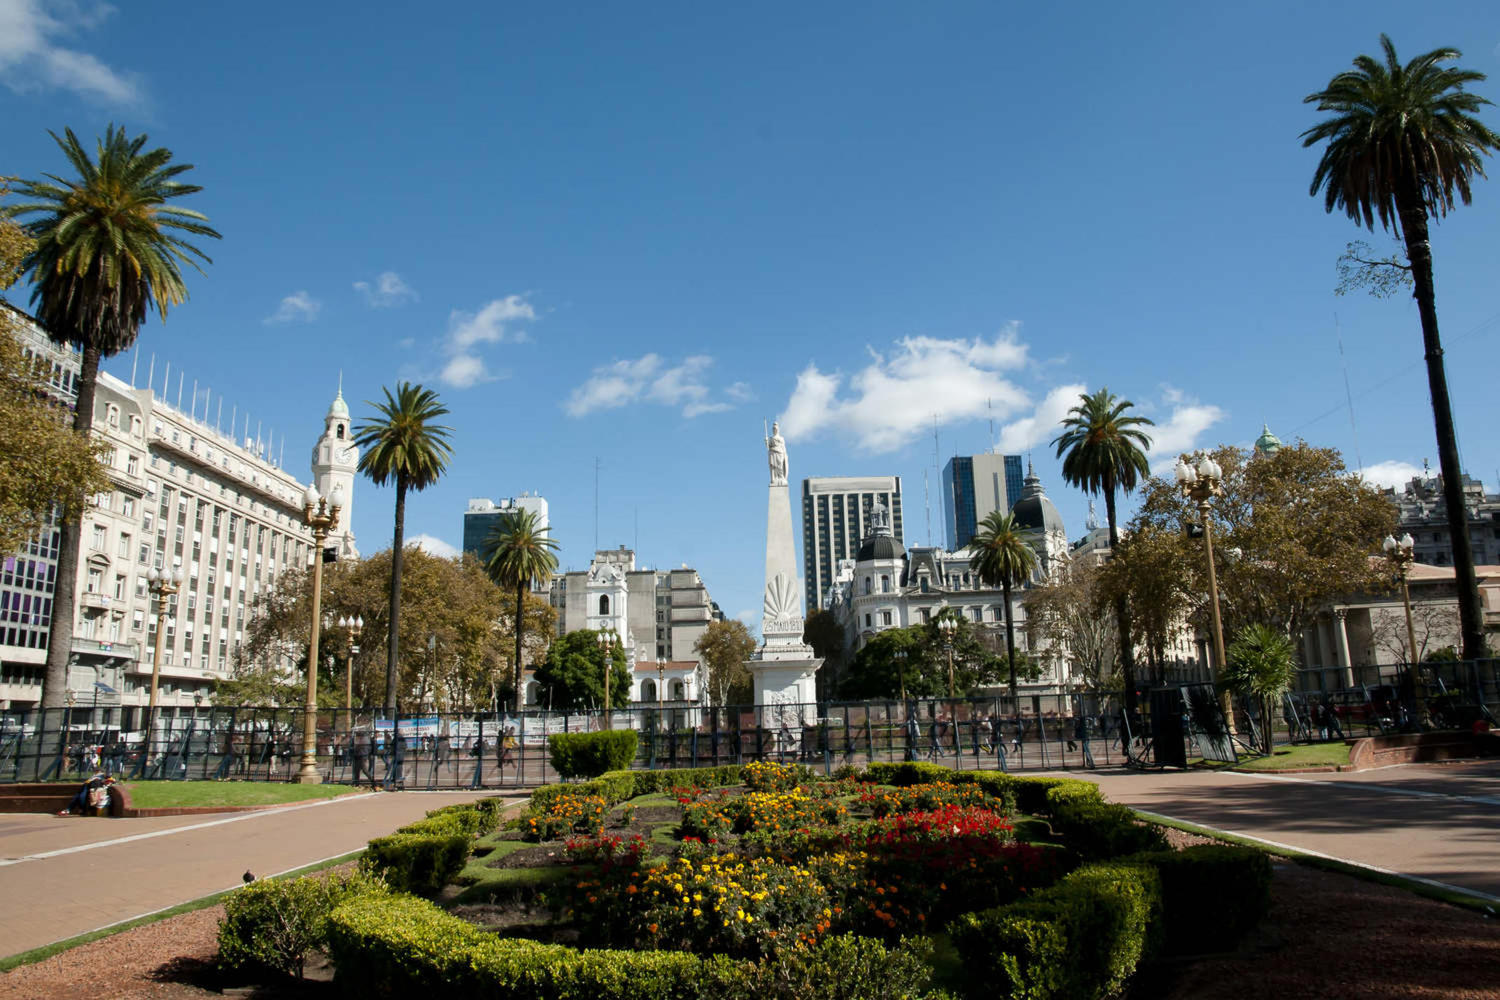 Famous Plaza de Mayo in Buenos Aires